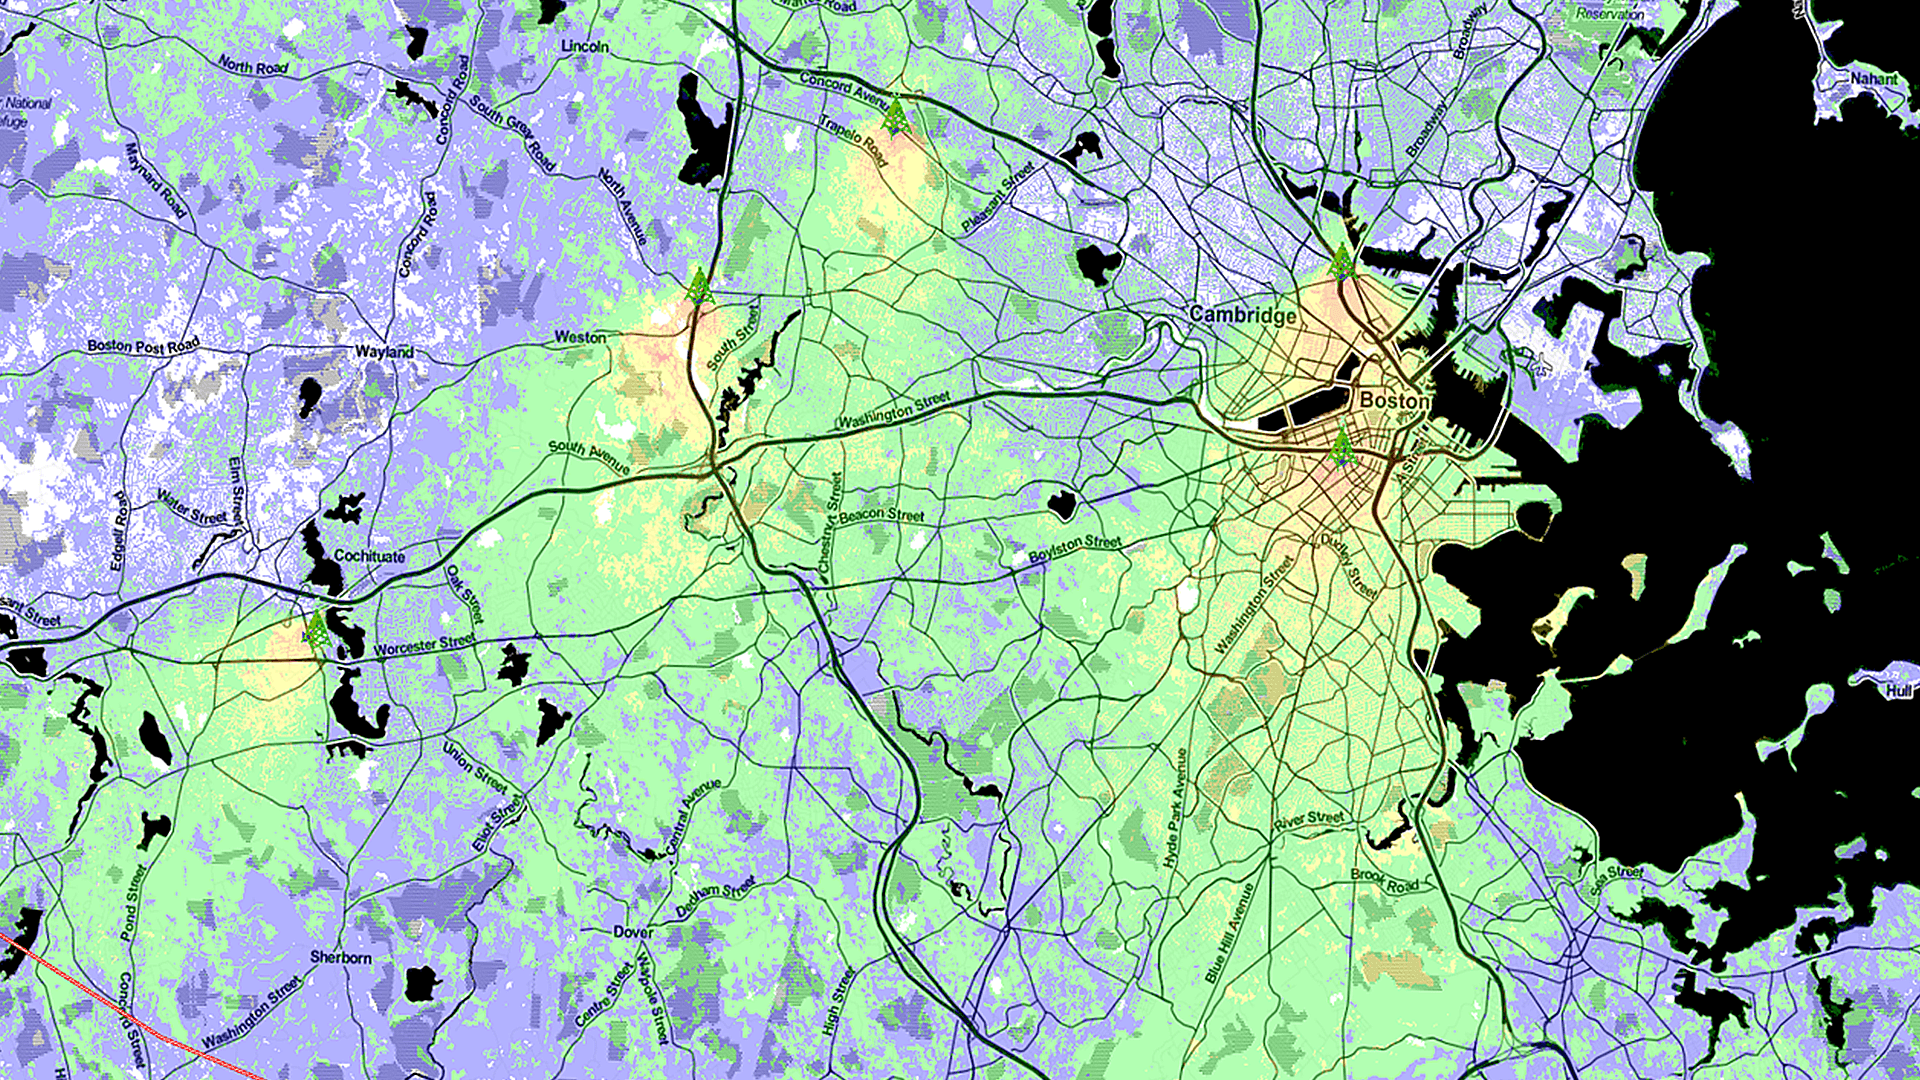 Boston Deployment AFTER | Notice the difference in the signal area